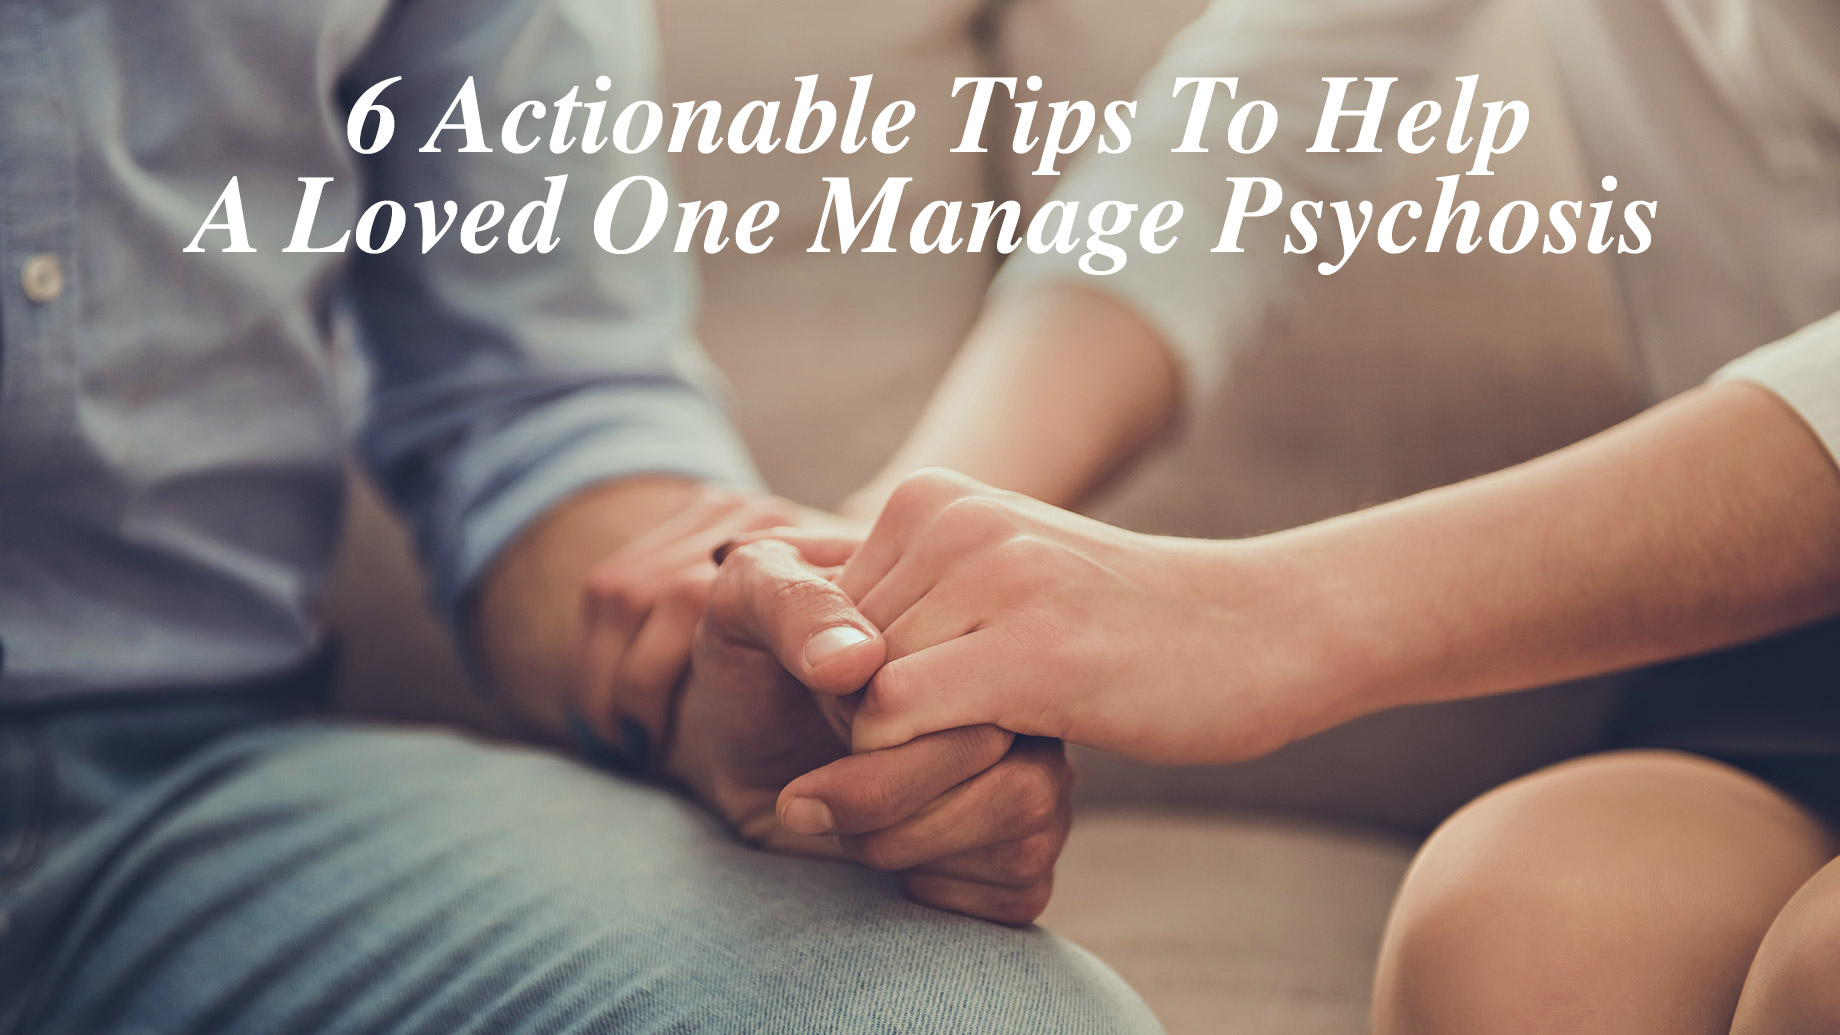 6 Actionable Tips To Help A Loved One Manage Psychosis